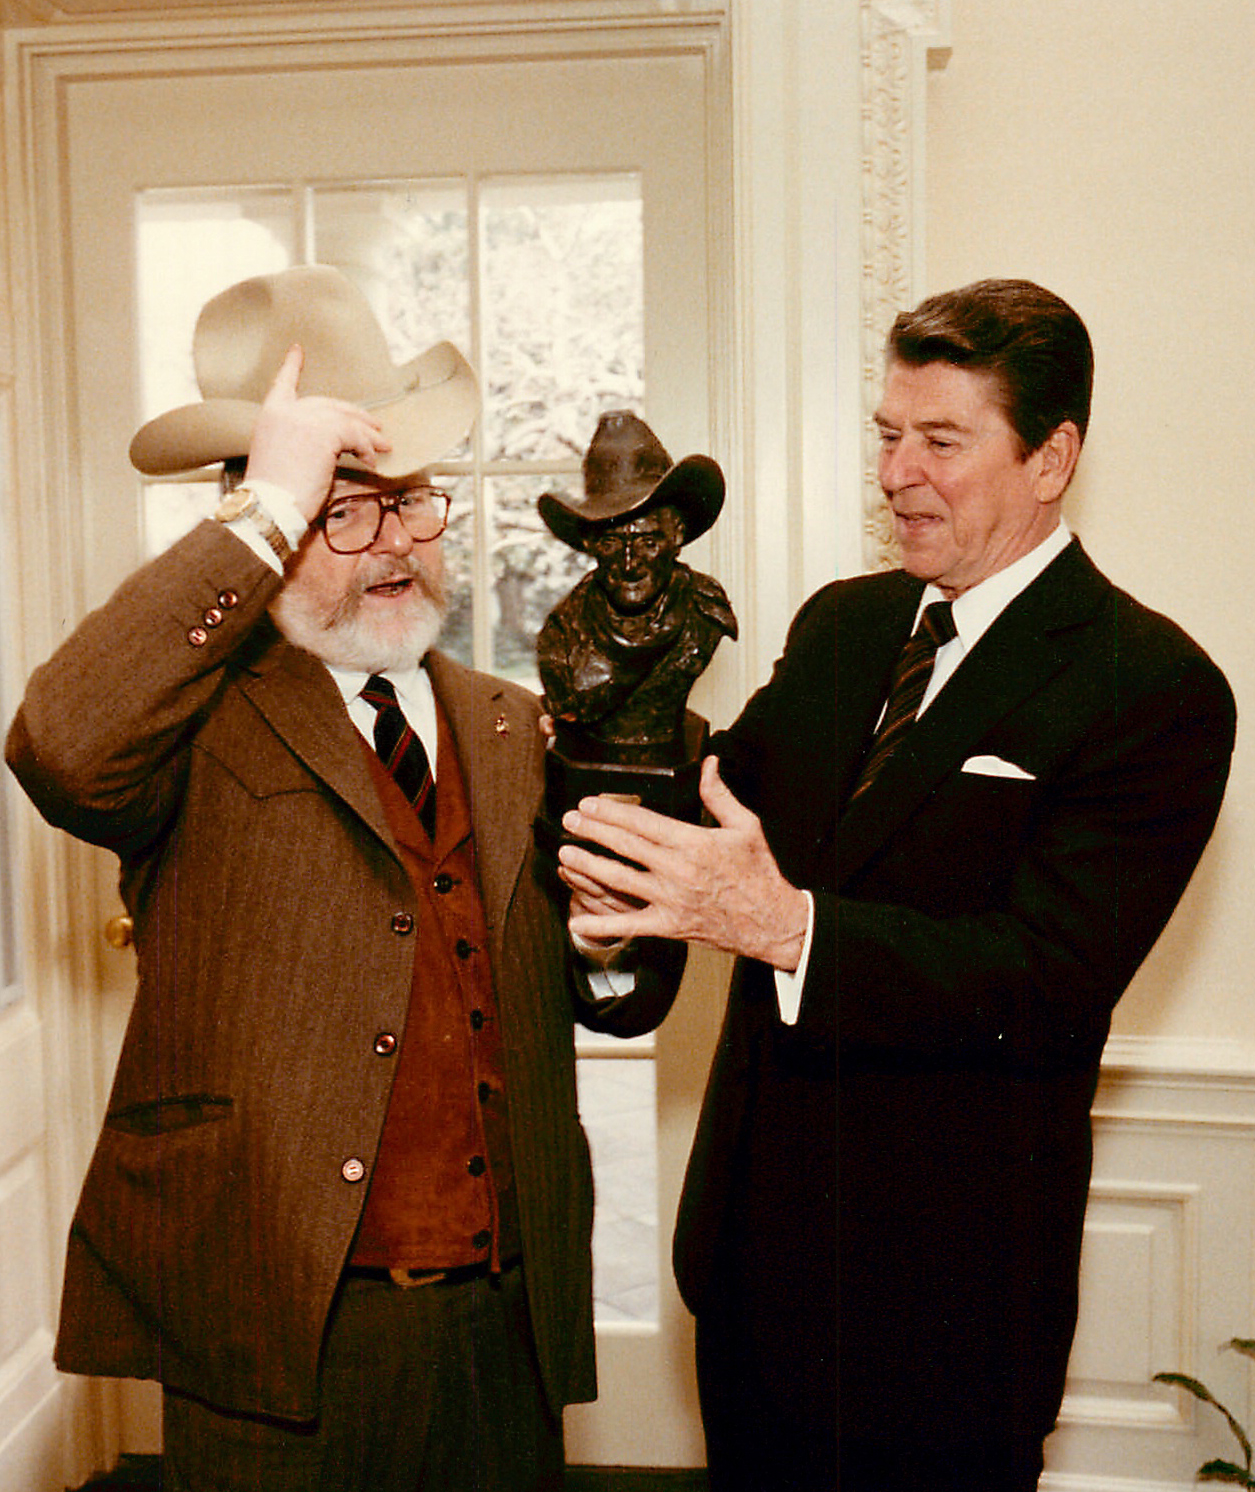 1982 Harry Jackson presenting President Reagan with Ol' Sabertooth sculpture in Oval Office